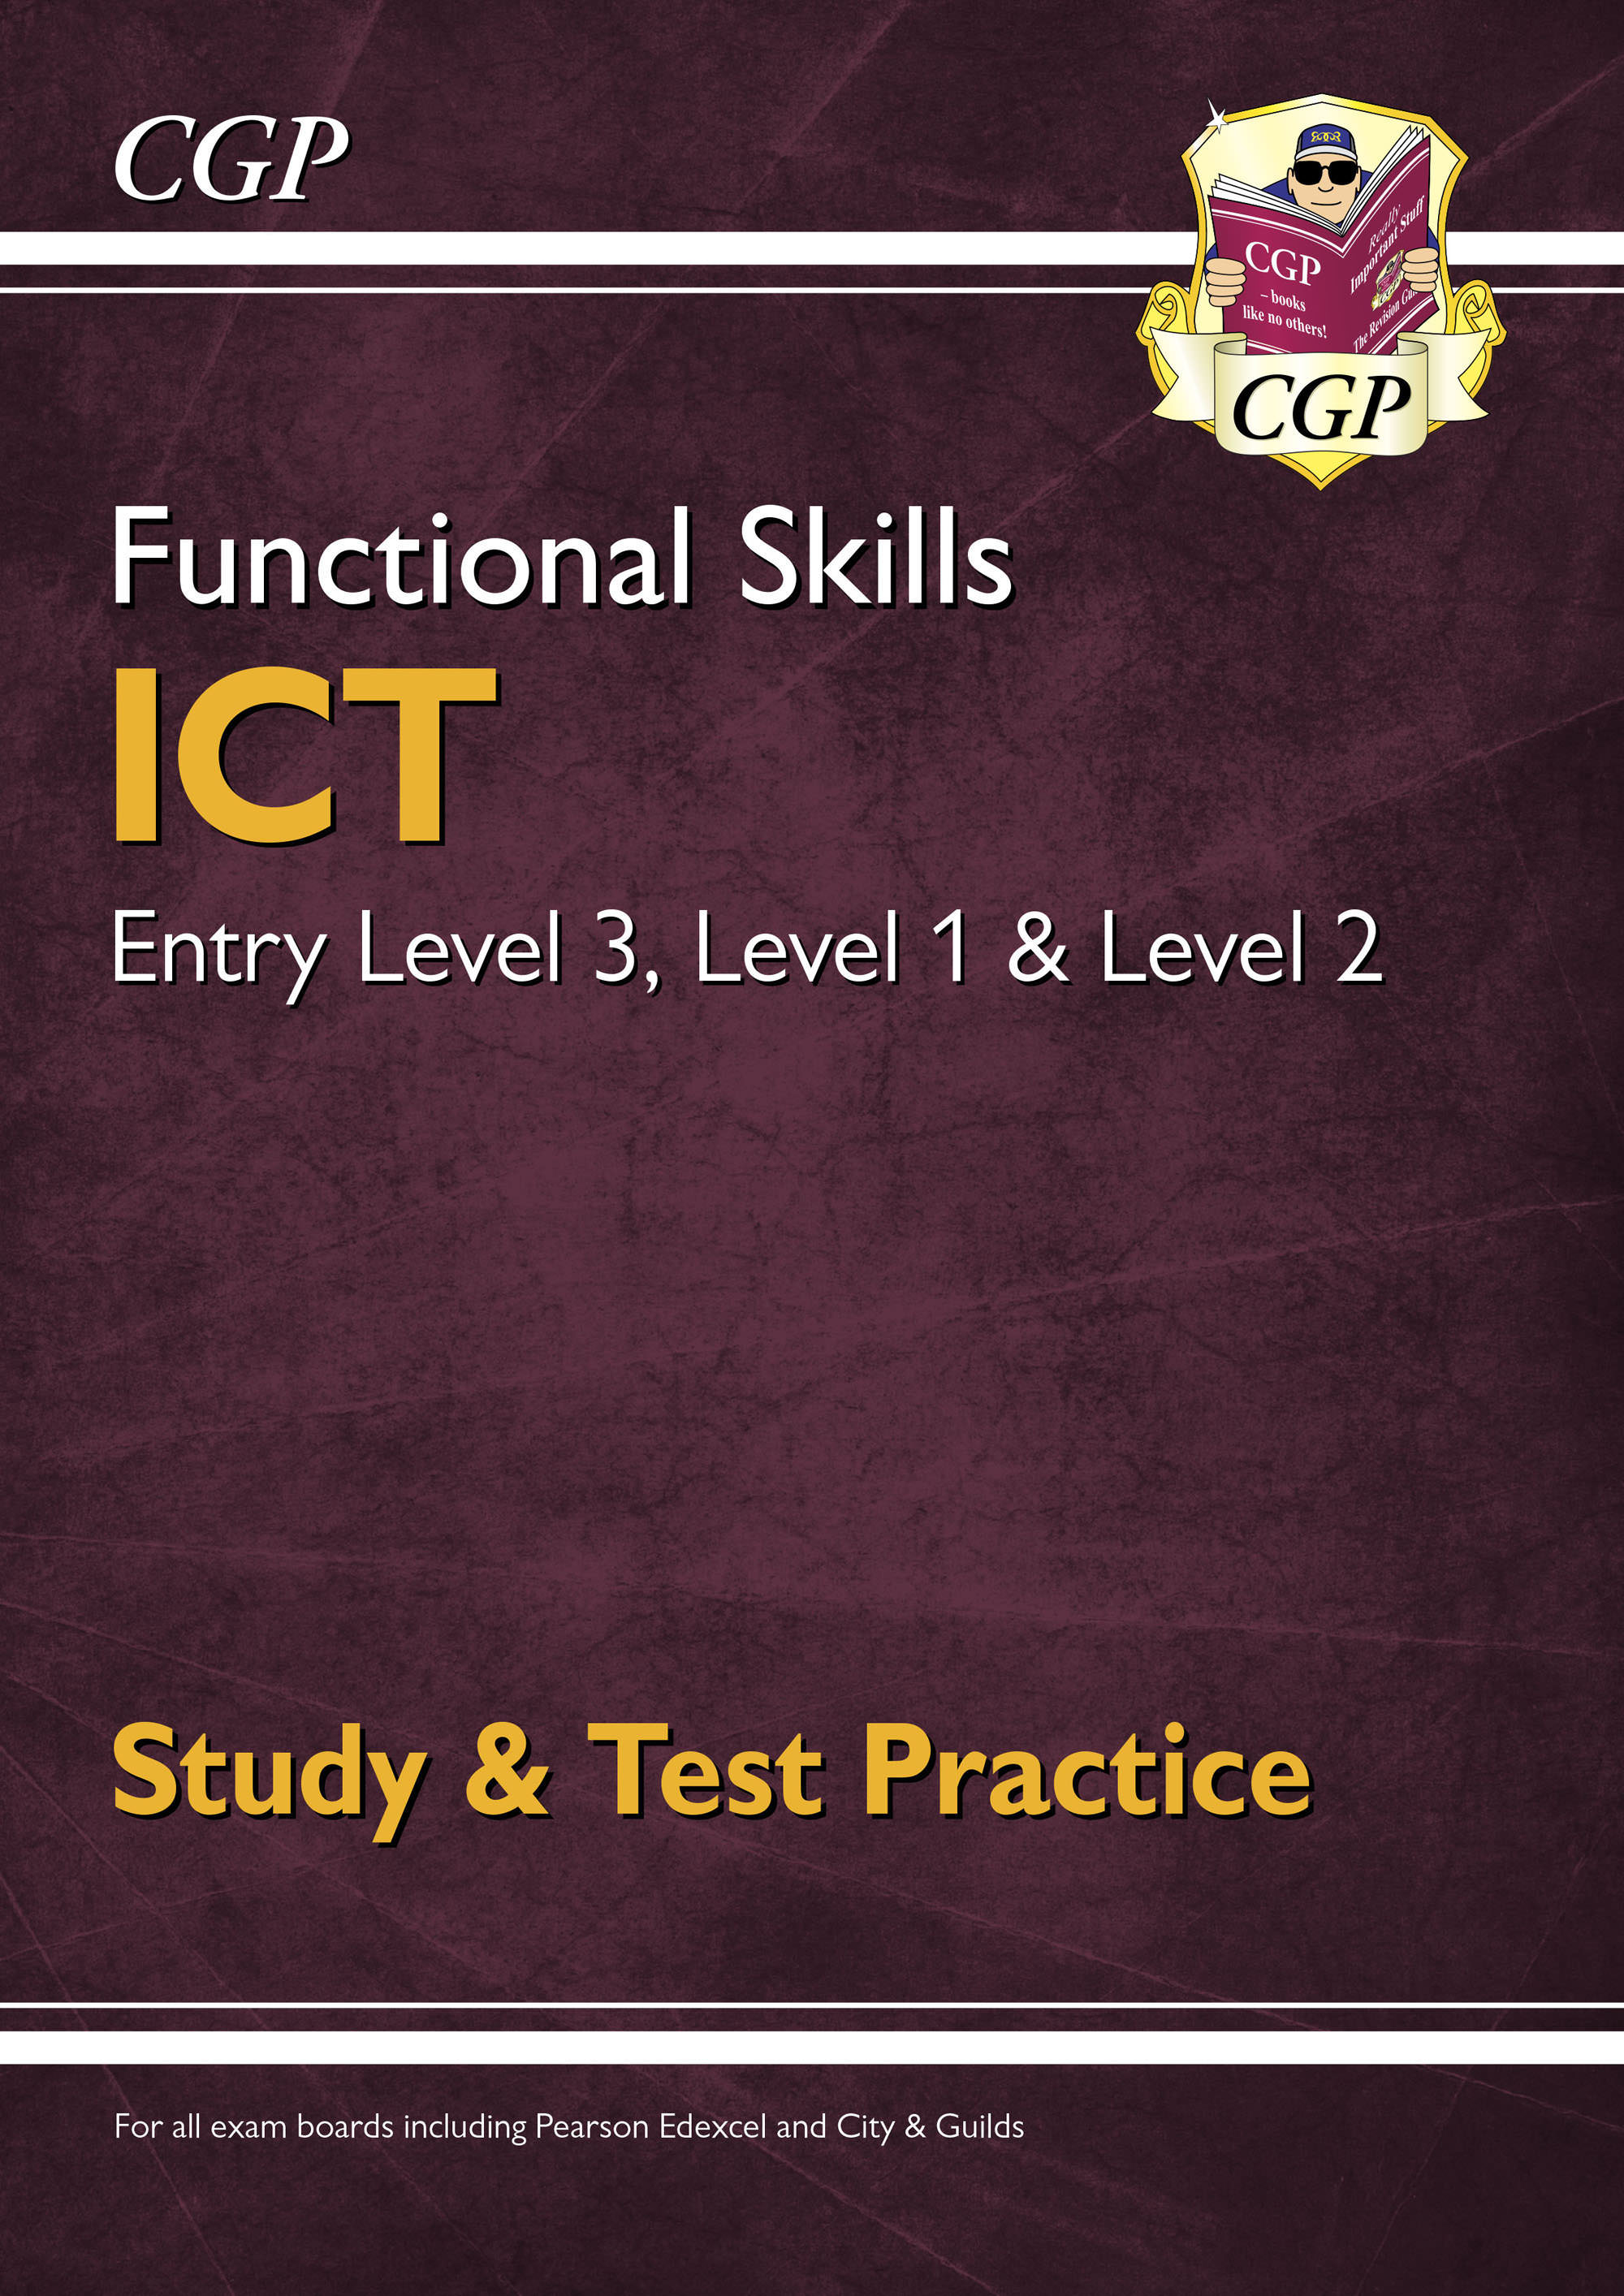 ISRA3DK - New Functional Skills ICT: Entry Level 3, Level 1 and Level 2 - Study & Test Practice